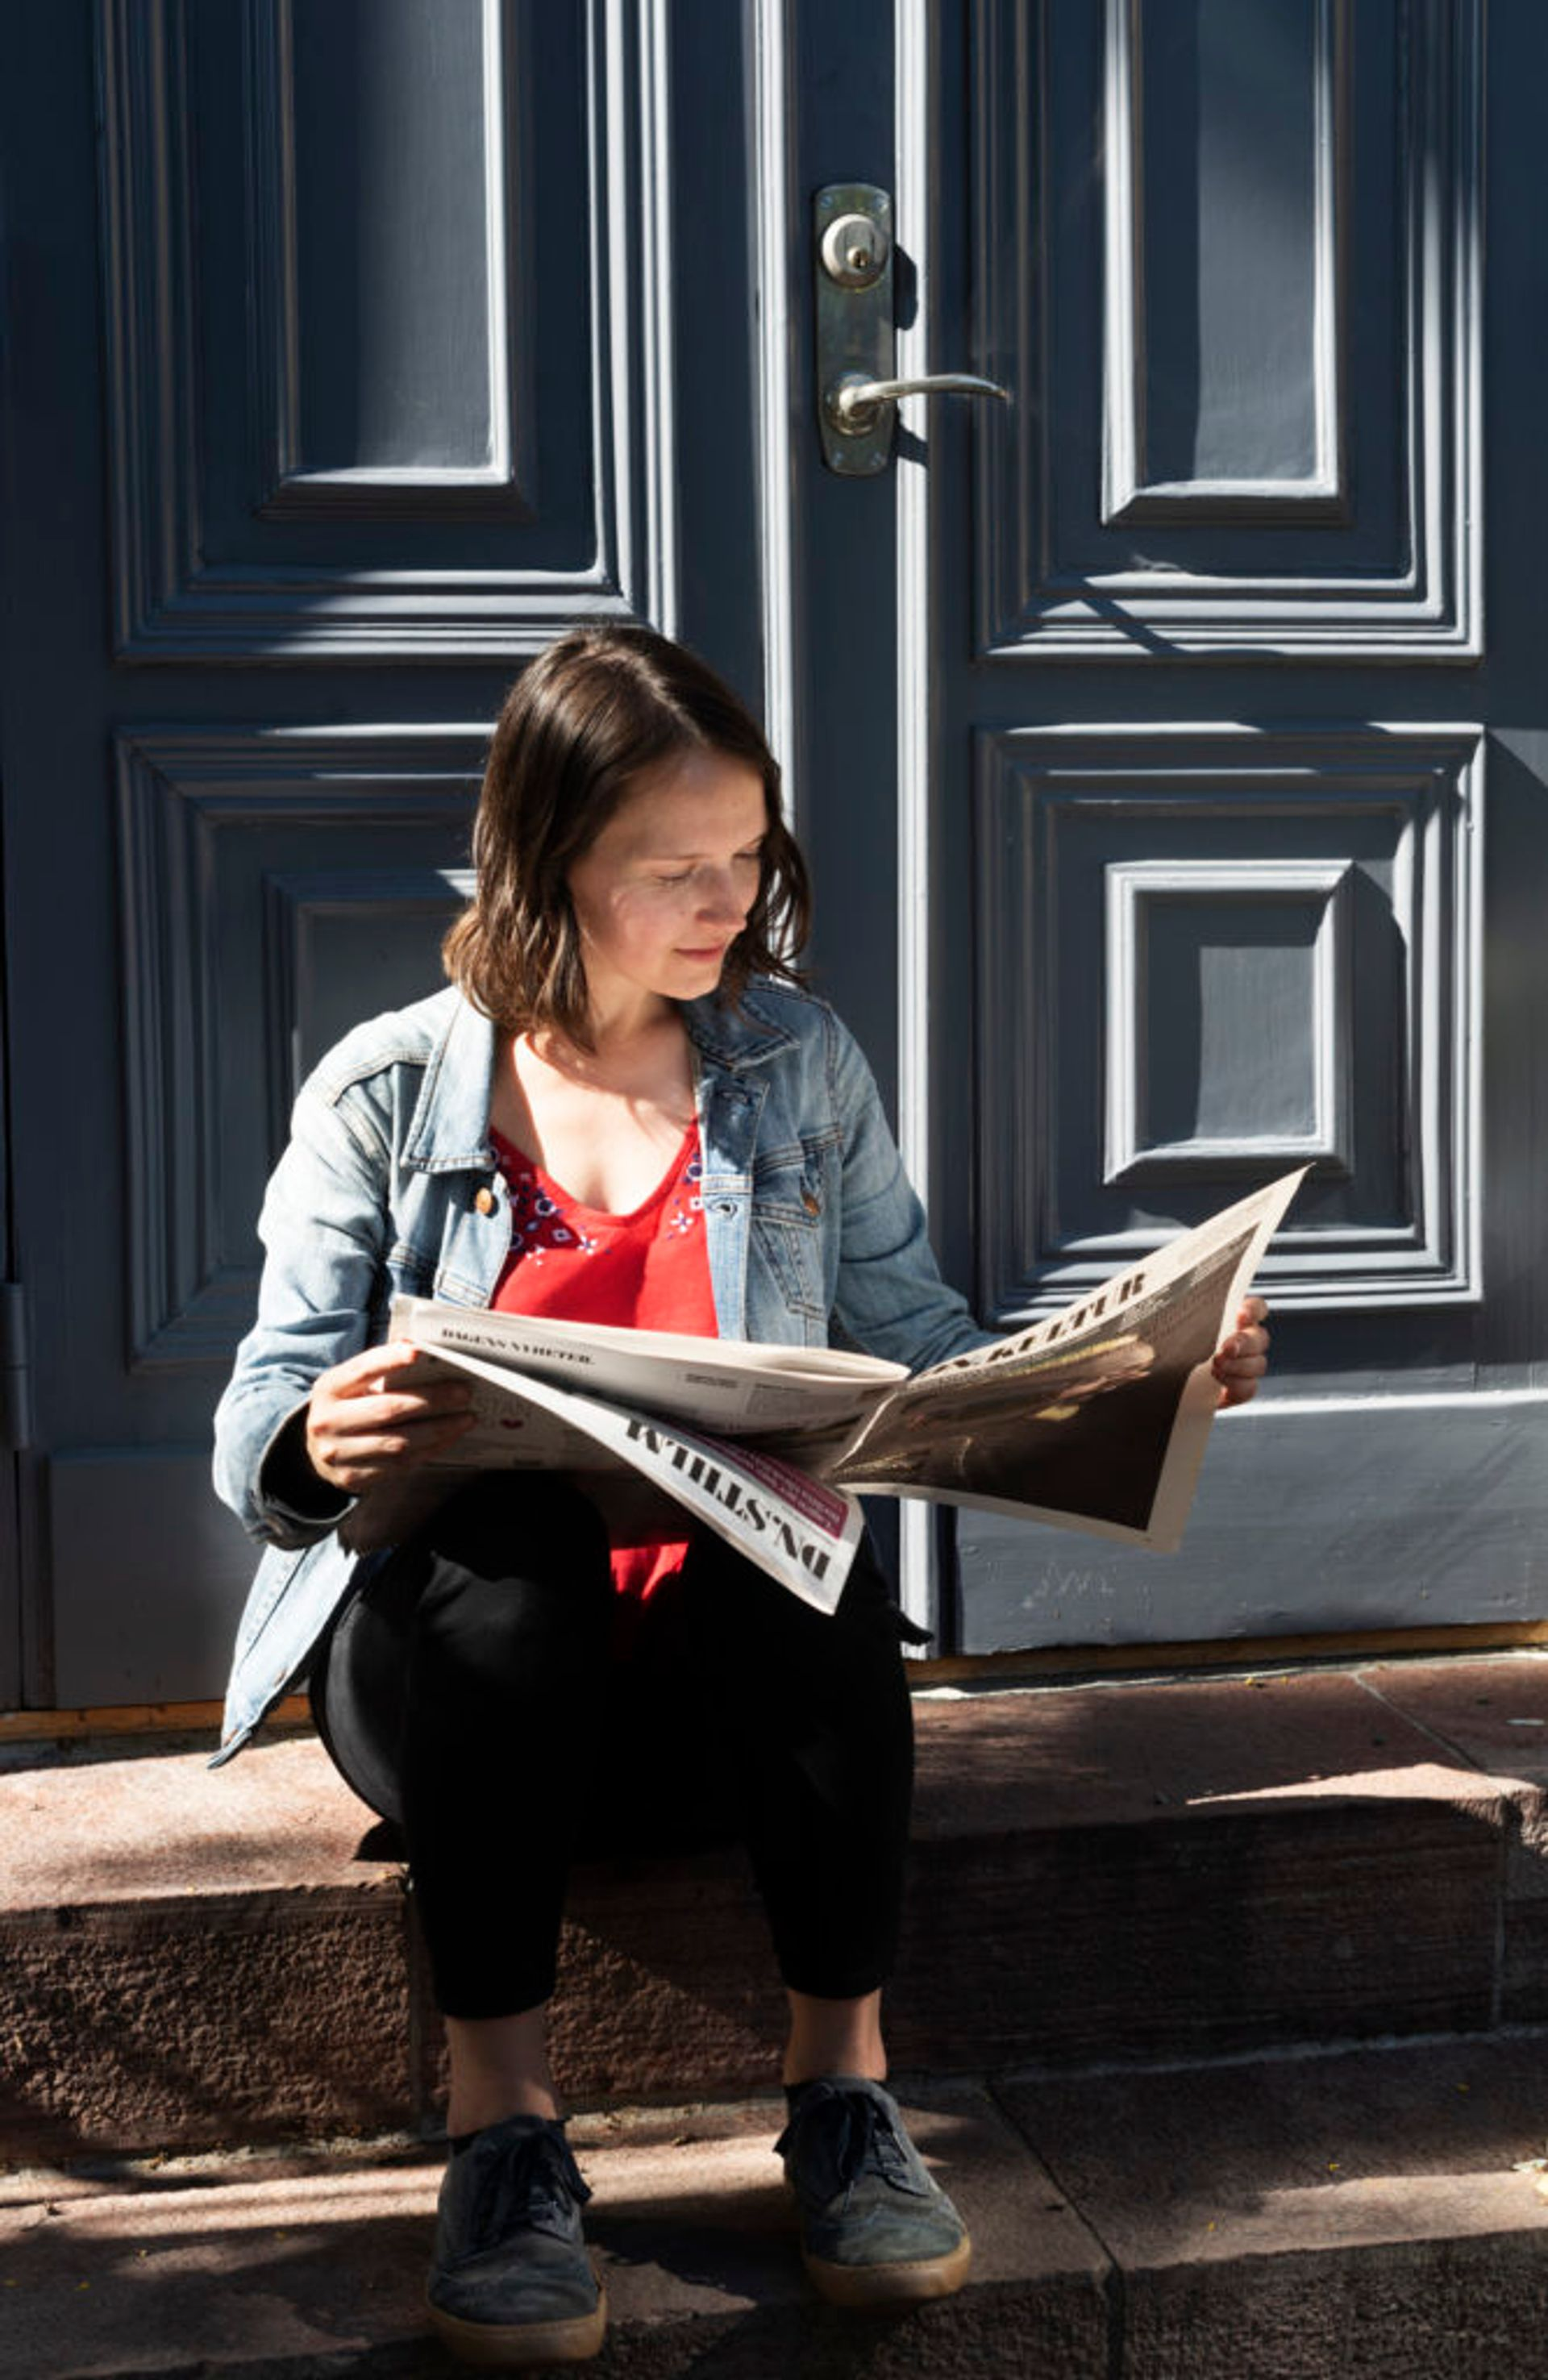 A student sitting on doorstep, reading a newspaper.